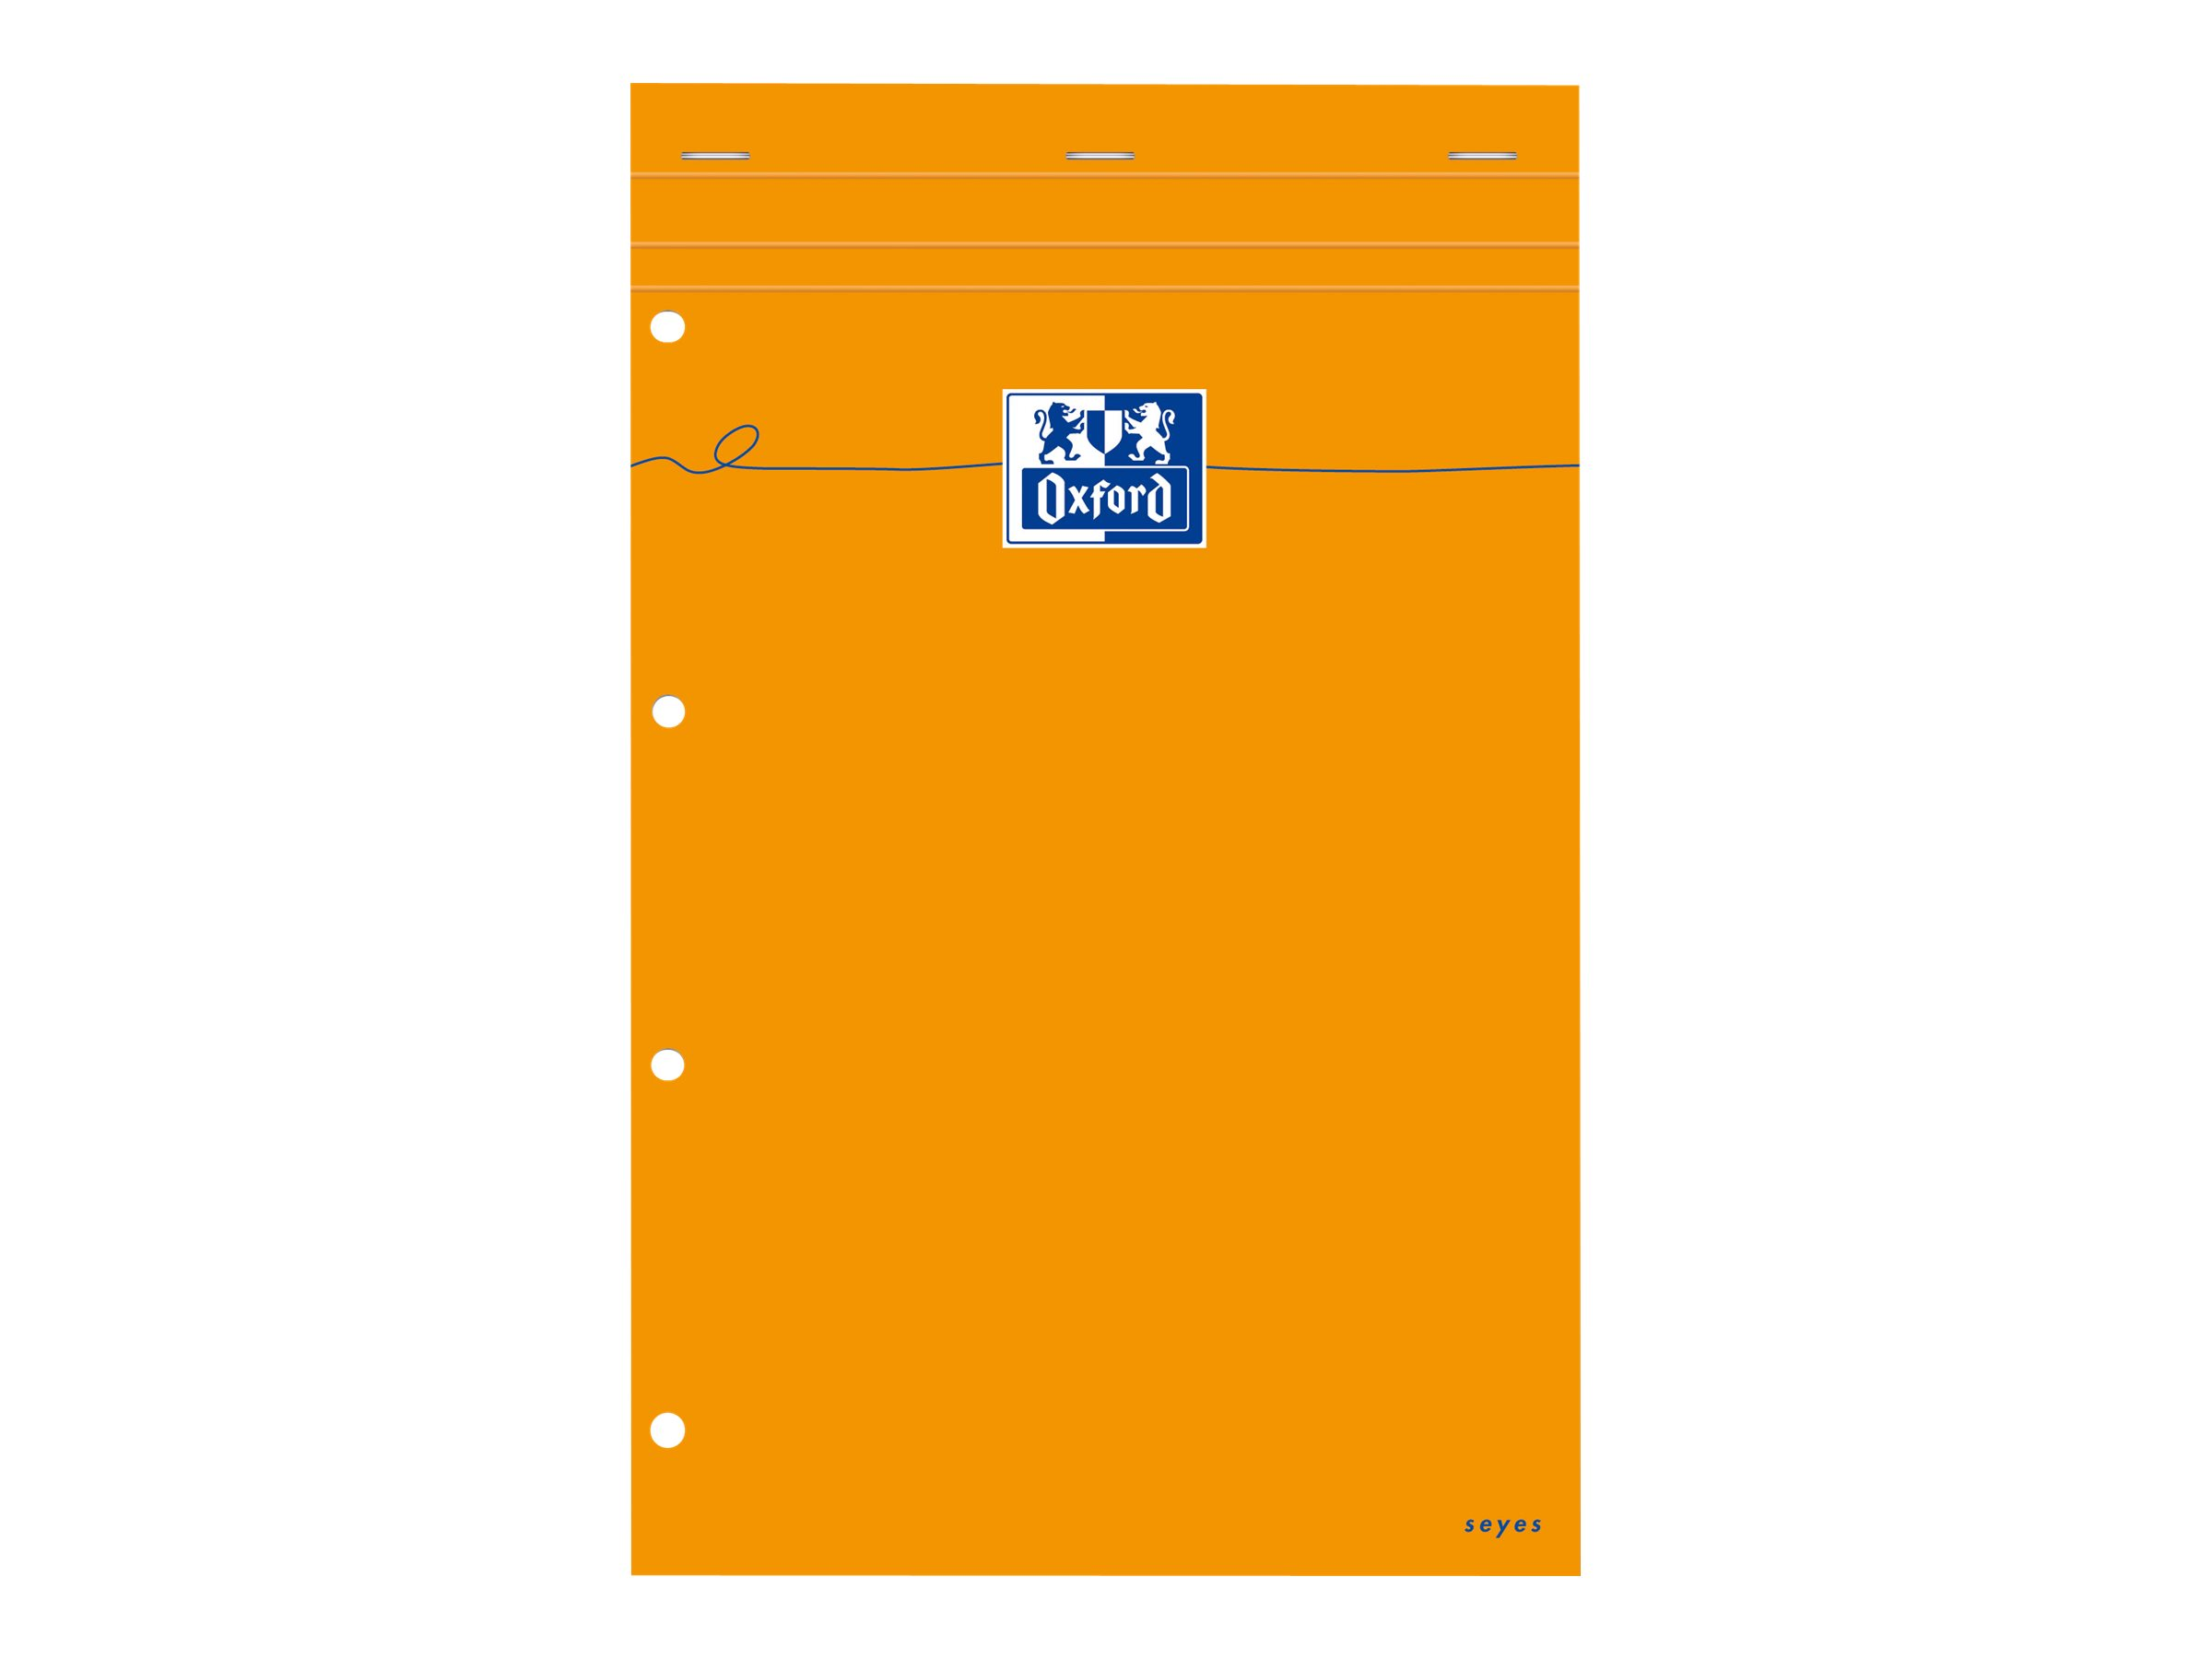 OXFORD - Bloc notes - A4 + - 160 pages - grands carreaux - perforé - orange